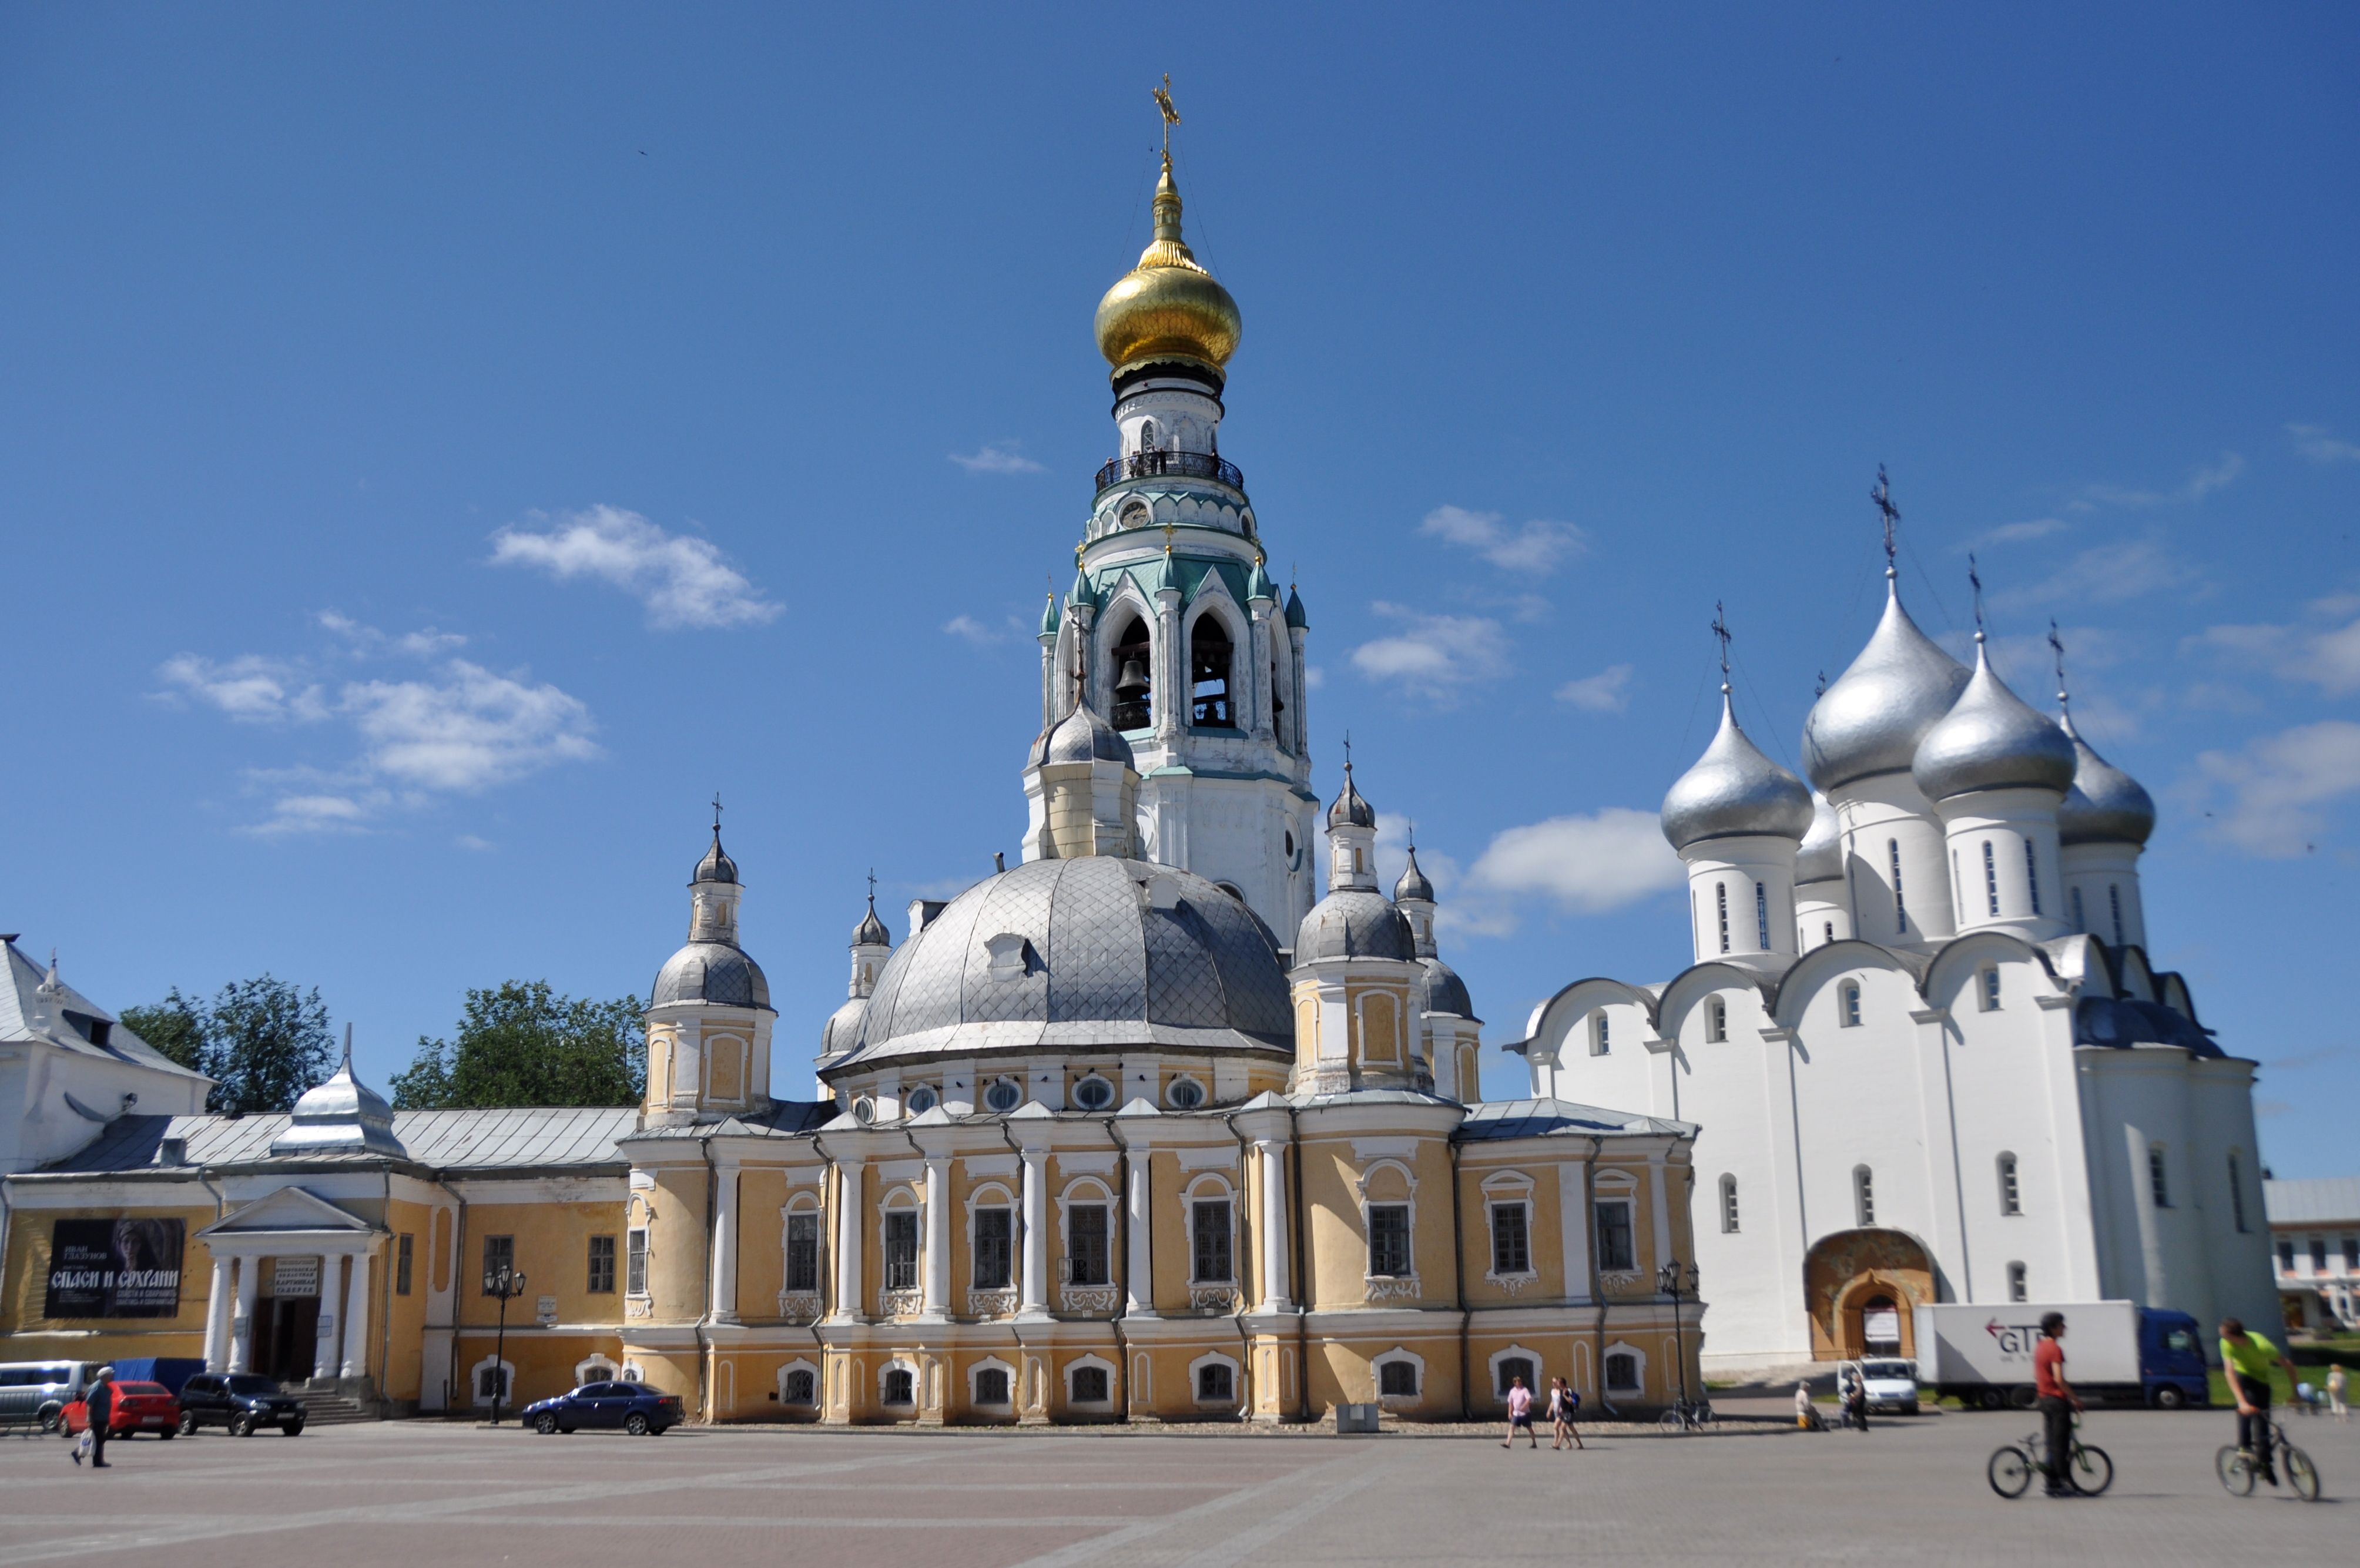 ... Cathedral Vologda South view Kremlin square.JPG - Wikimedia Commons